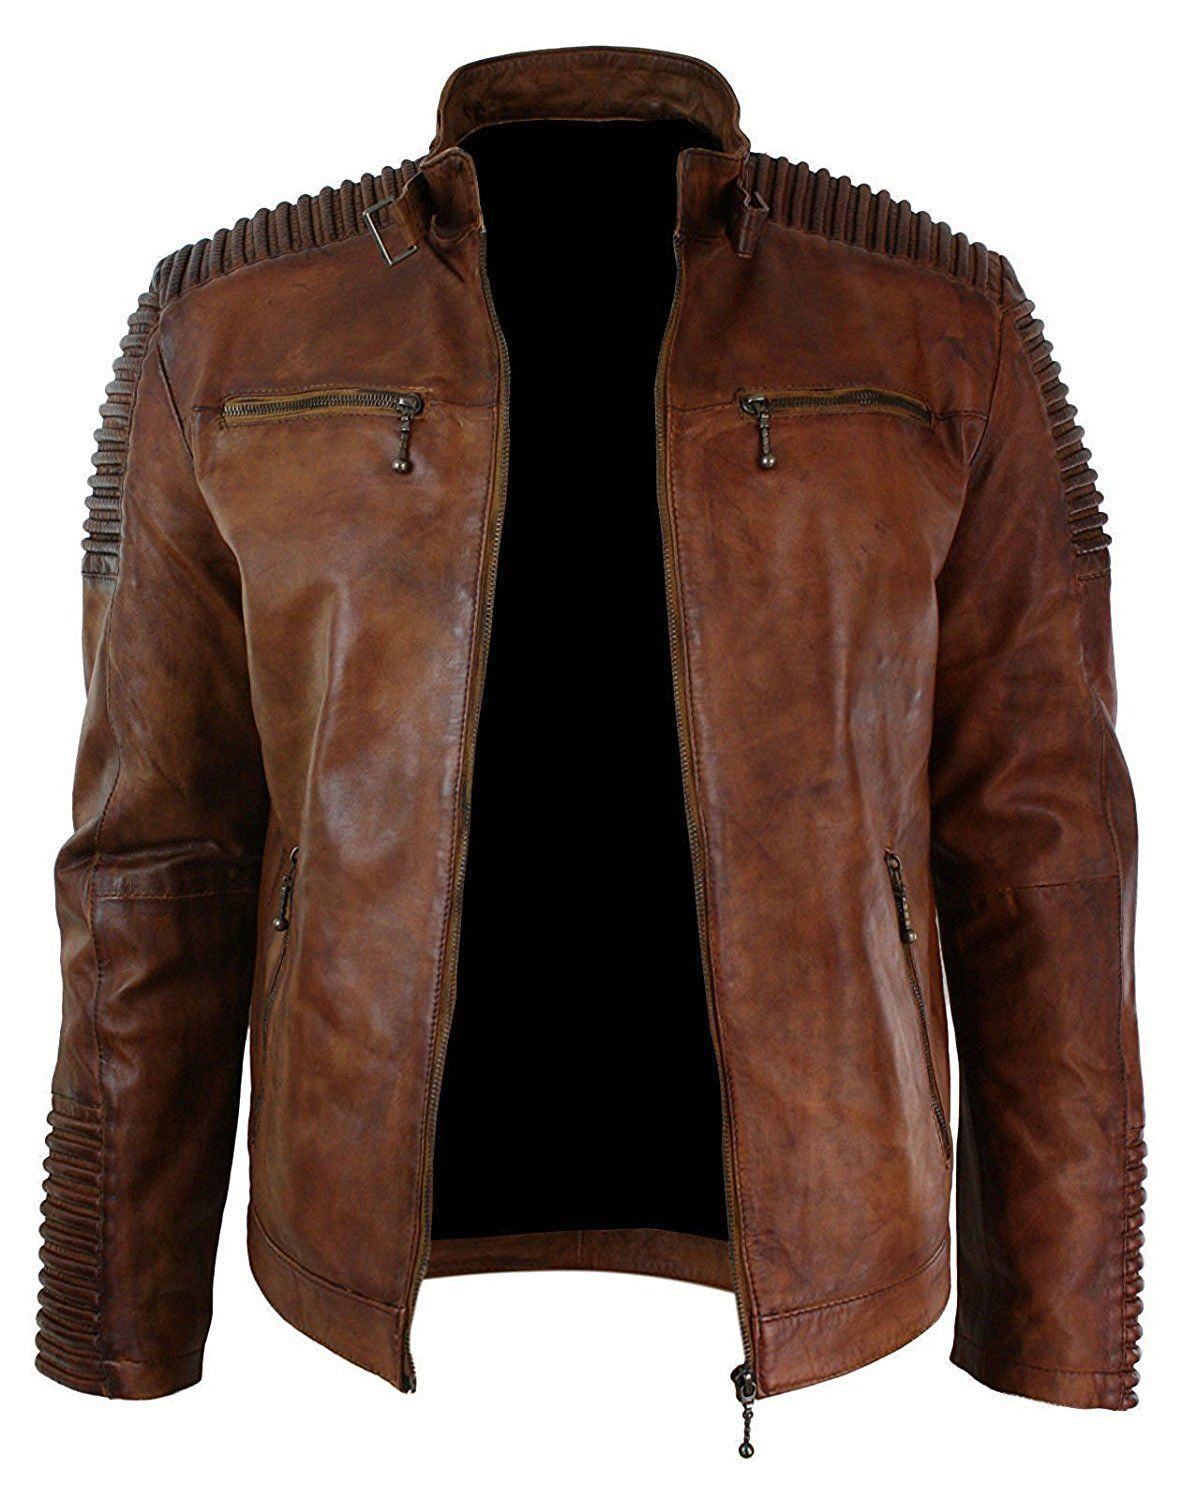 Men's Biker Vintage Cafe Racer Wax Distressed Brown